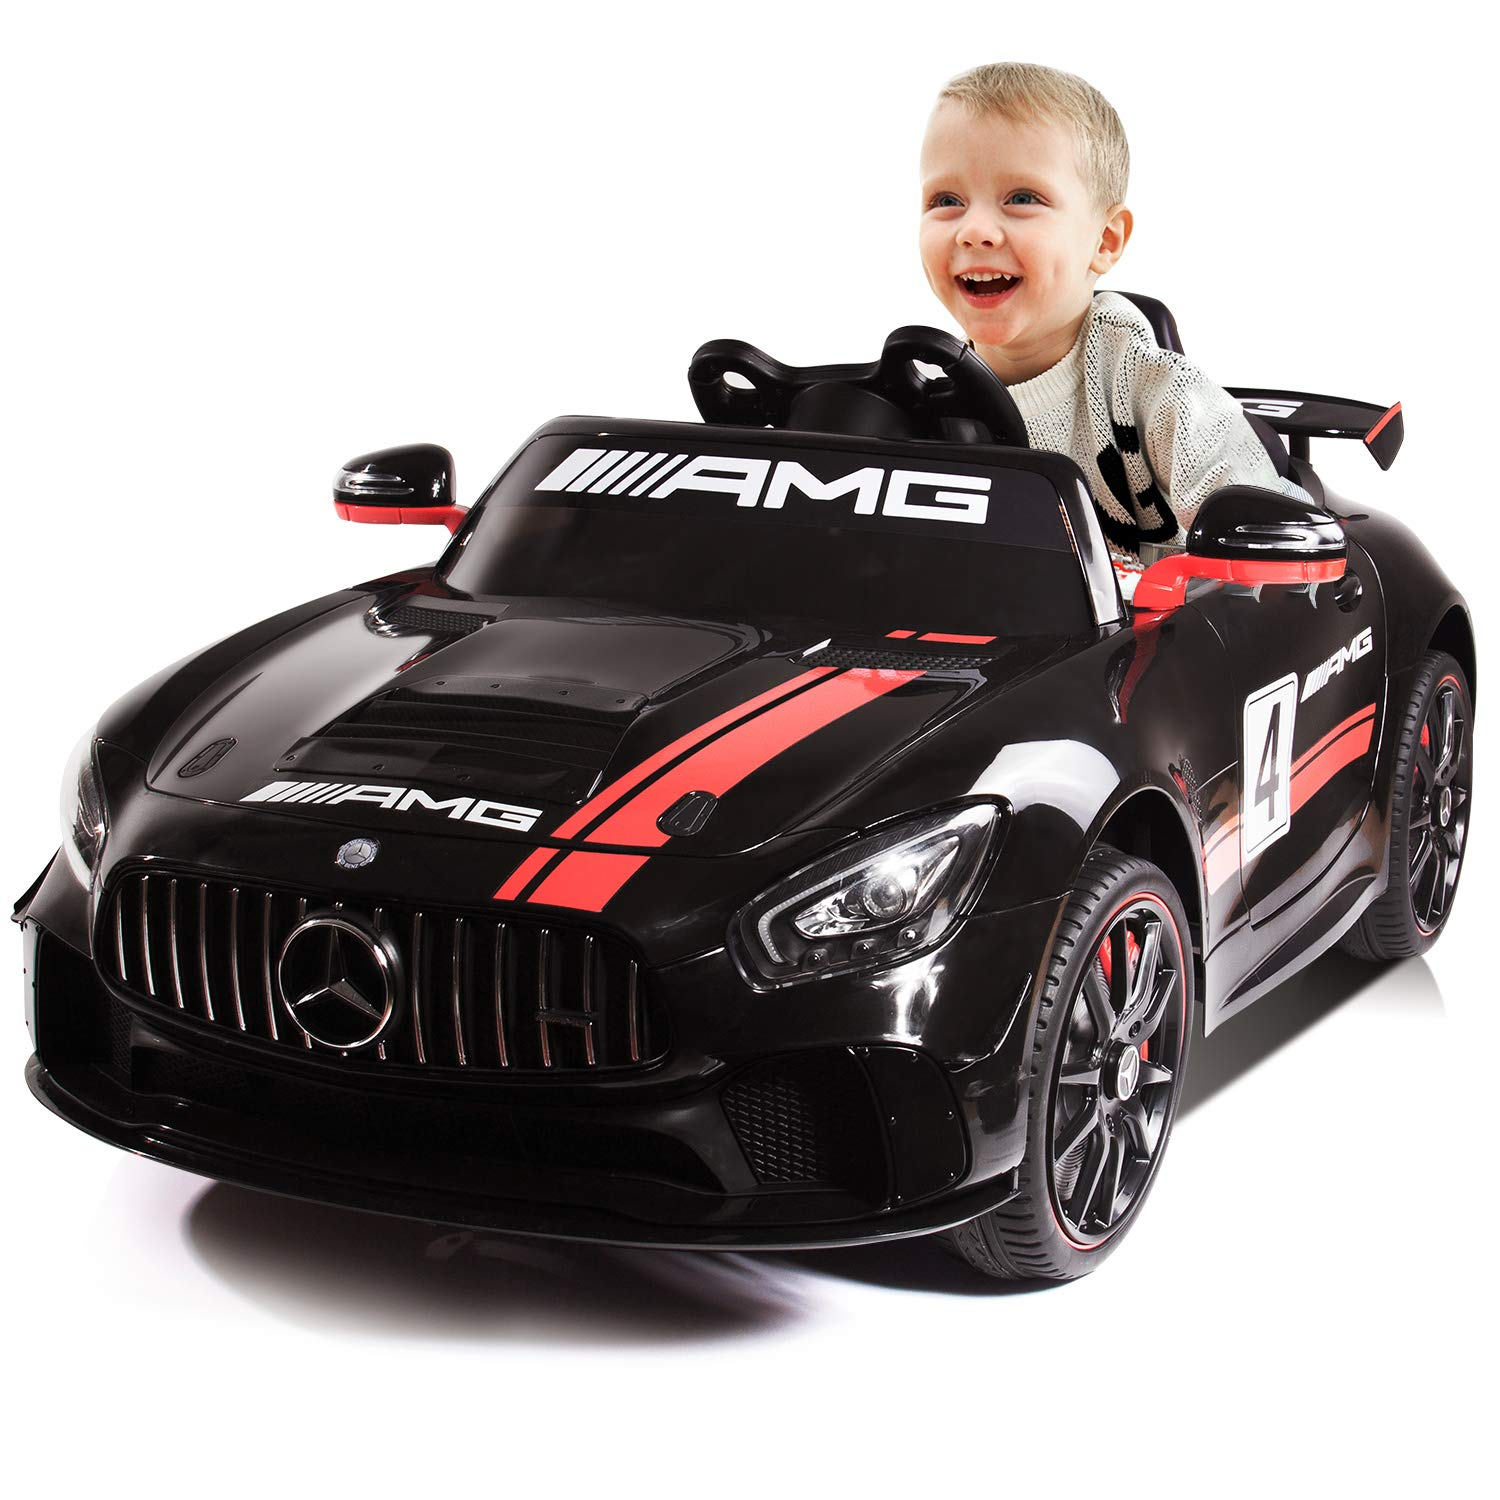 9 Best Battery Powered Kids Vehicles Reviews in 2021 18